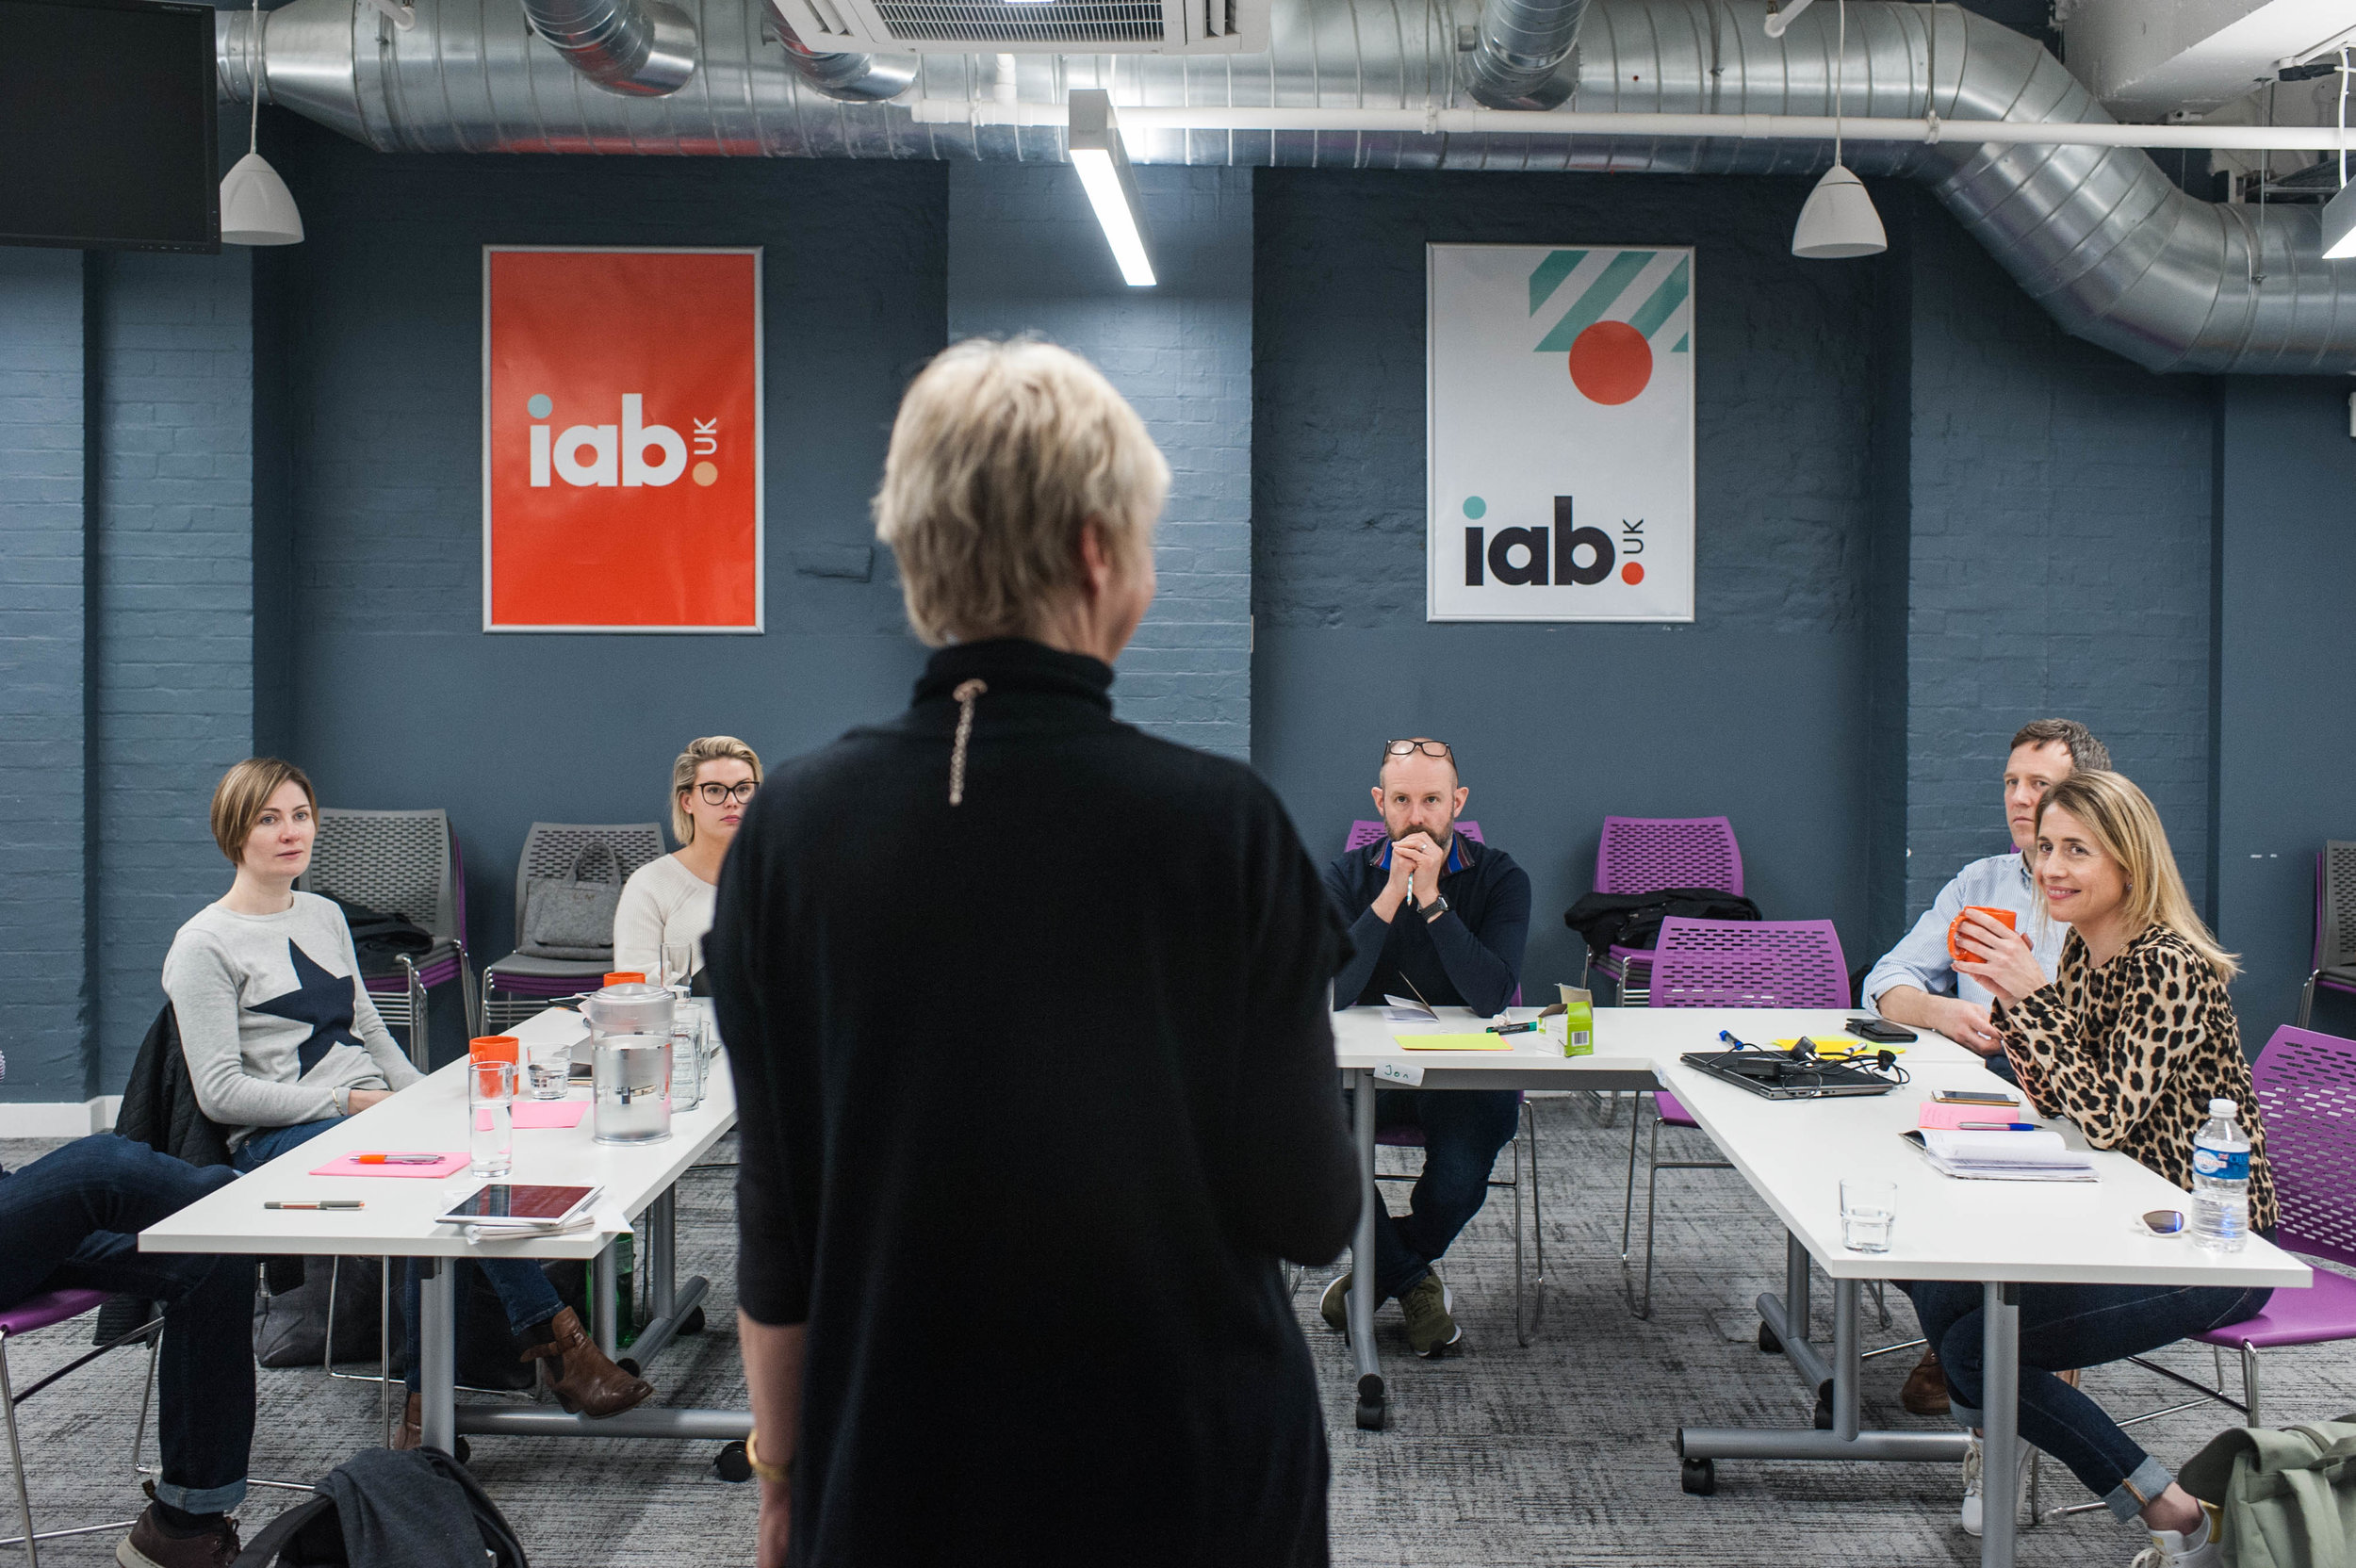 IAB Uk_Incidental Shots_SM (160 of 312).jpg